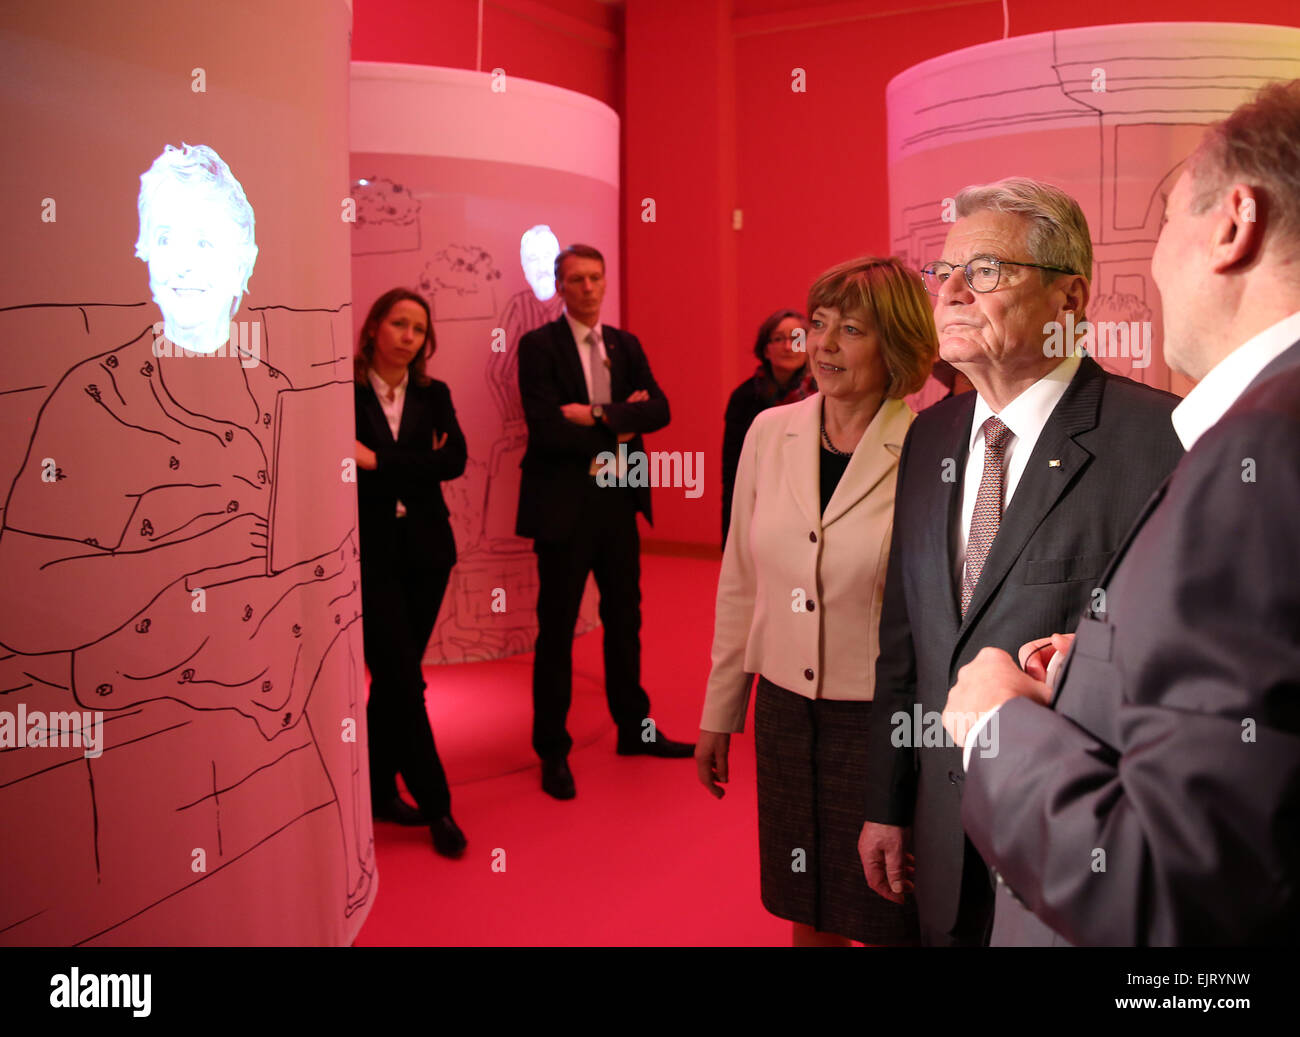 Berlin, Germany. 31st Mar, 2015. German president Joachim Gauck (C) and his partner Daniela Schadt (L) get a tour - Stock Image